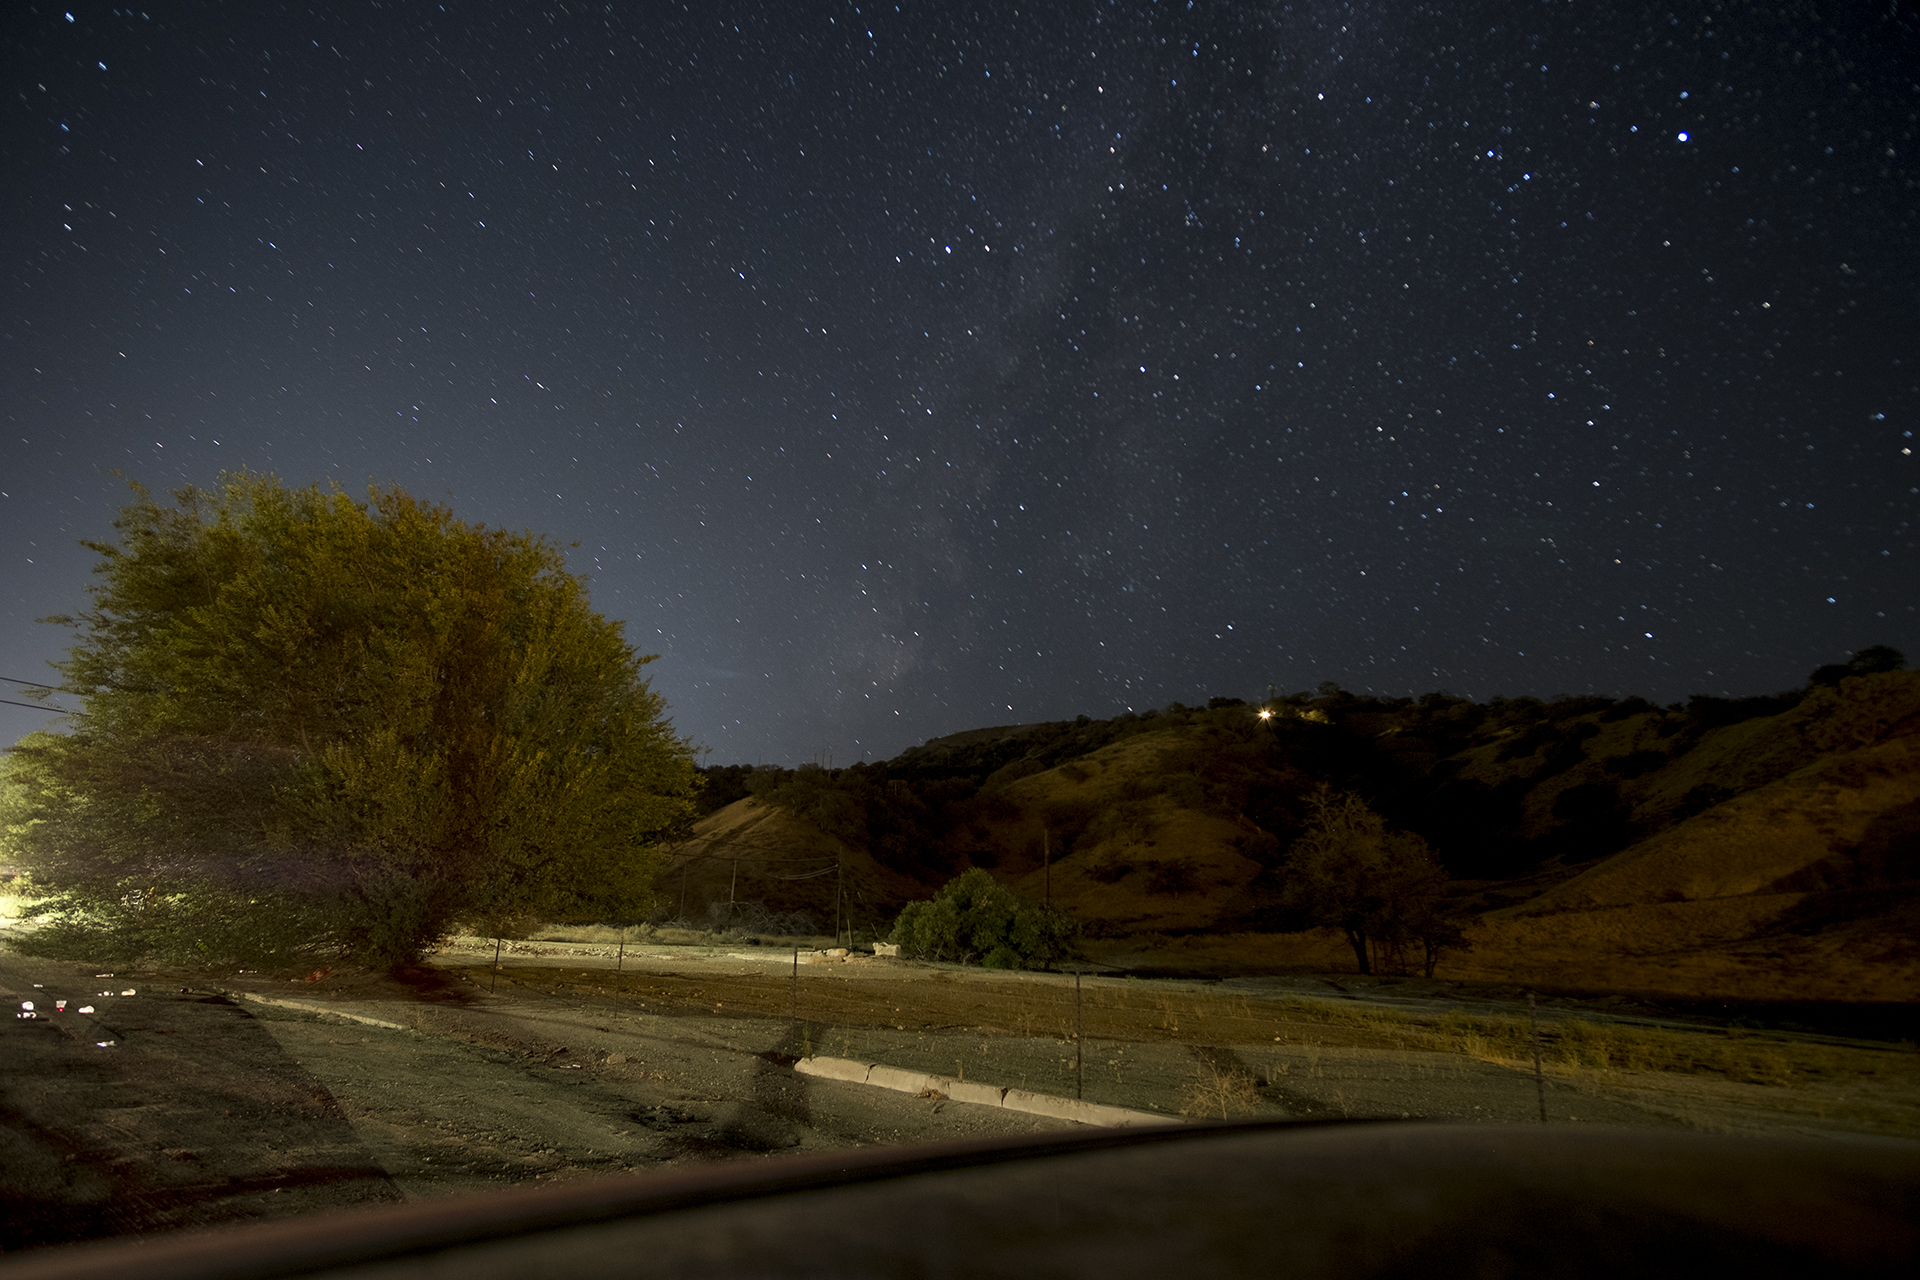 A stop along the road in Lebec to look at the Milky Way turned into making some of the first images that look like a visit to California.